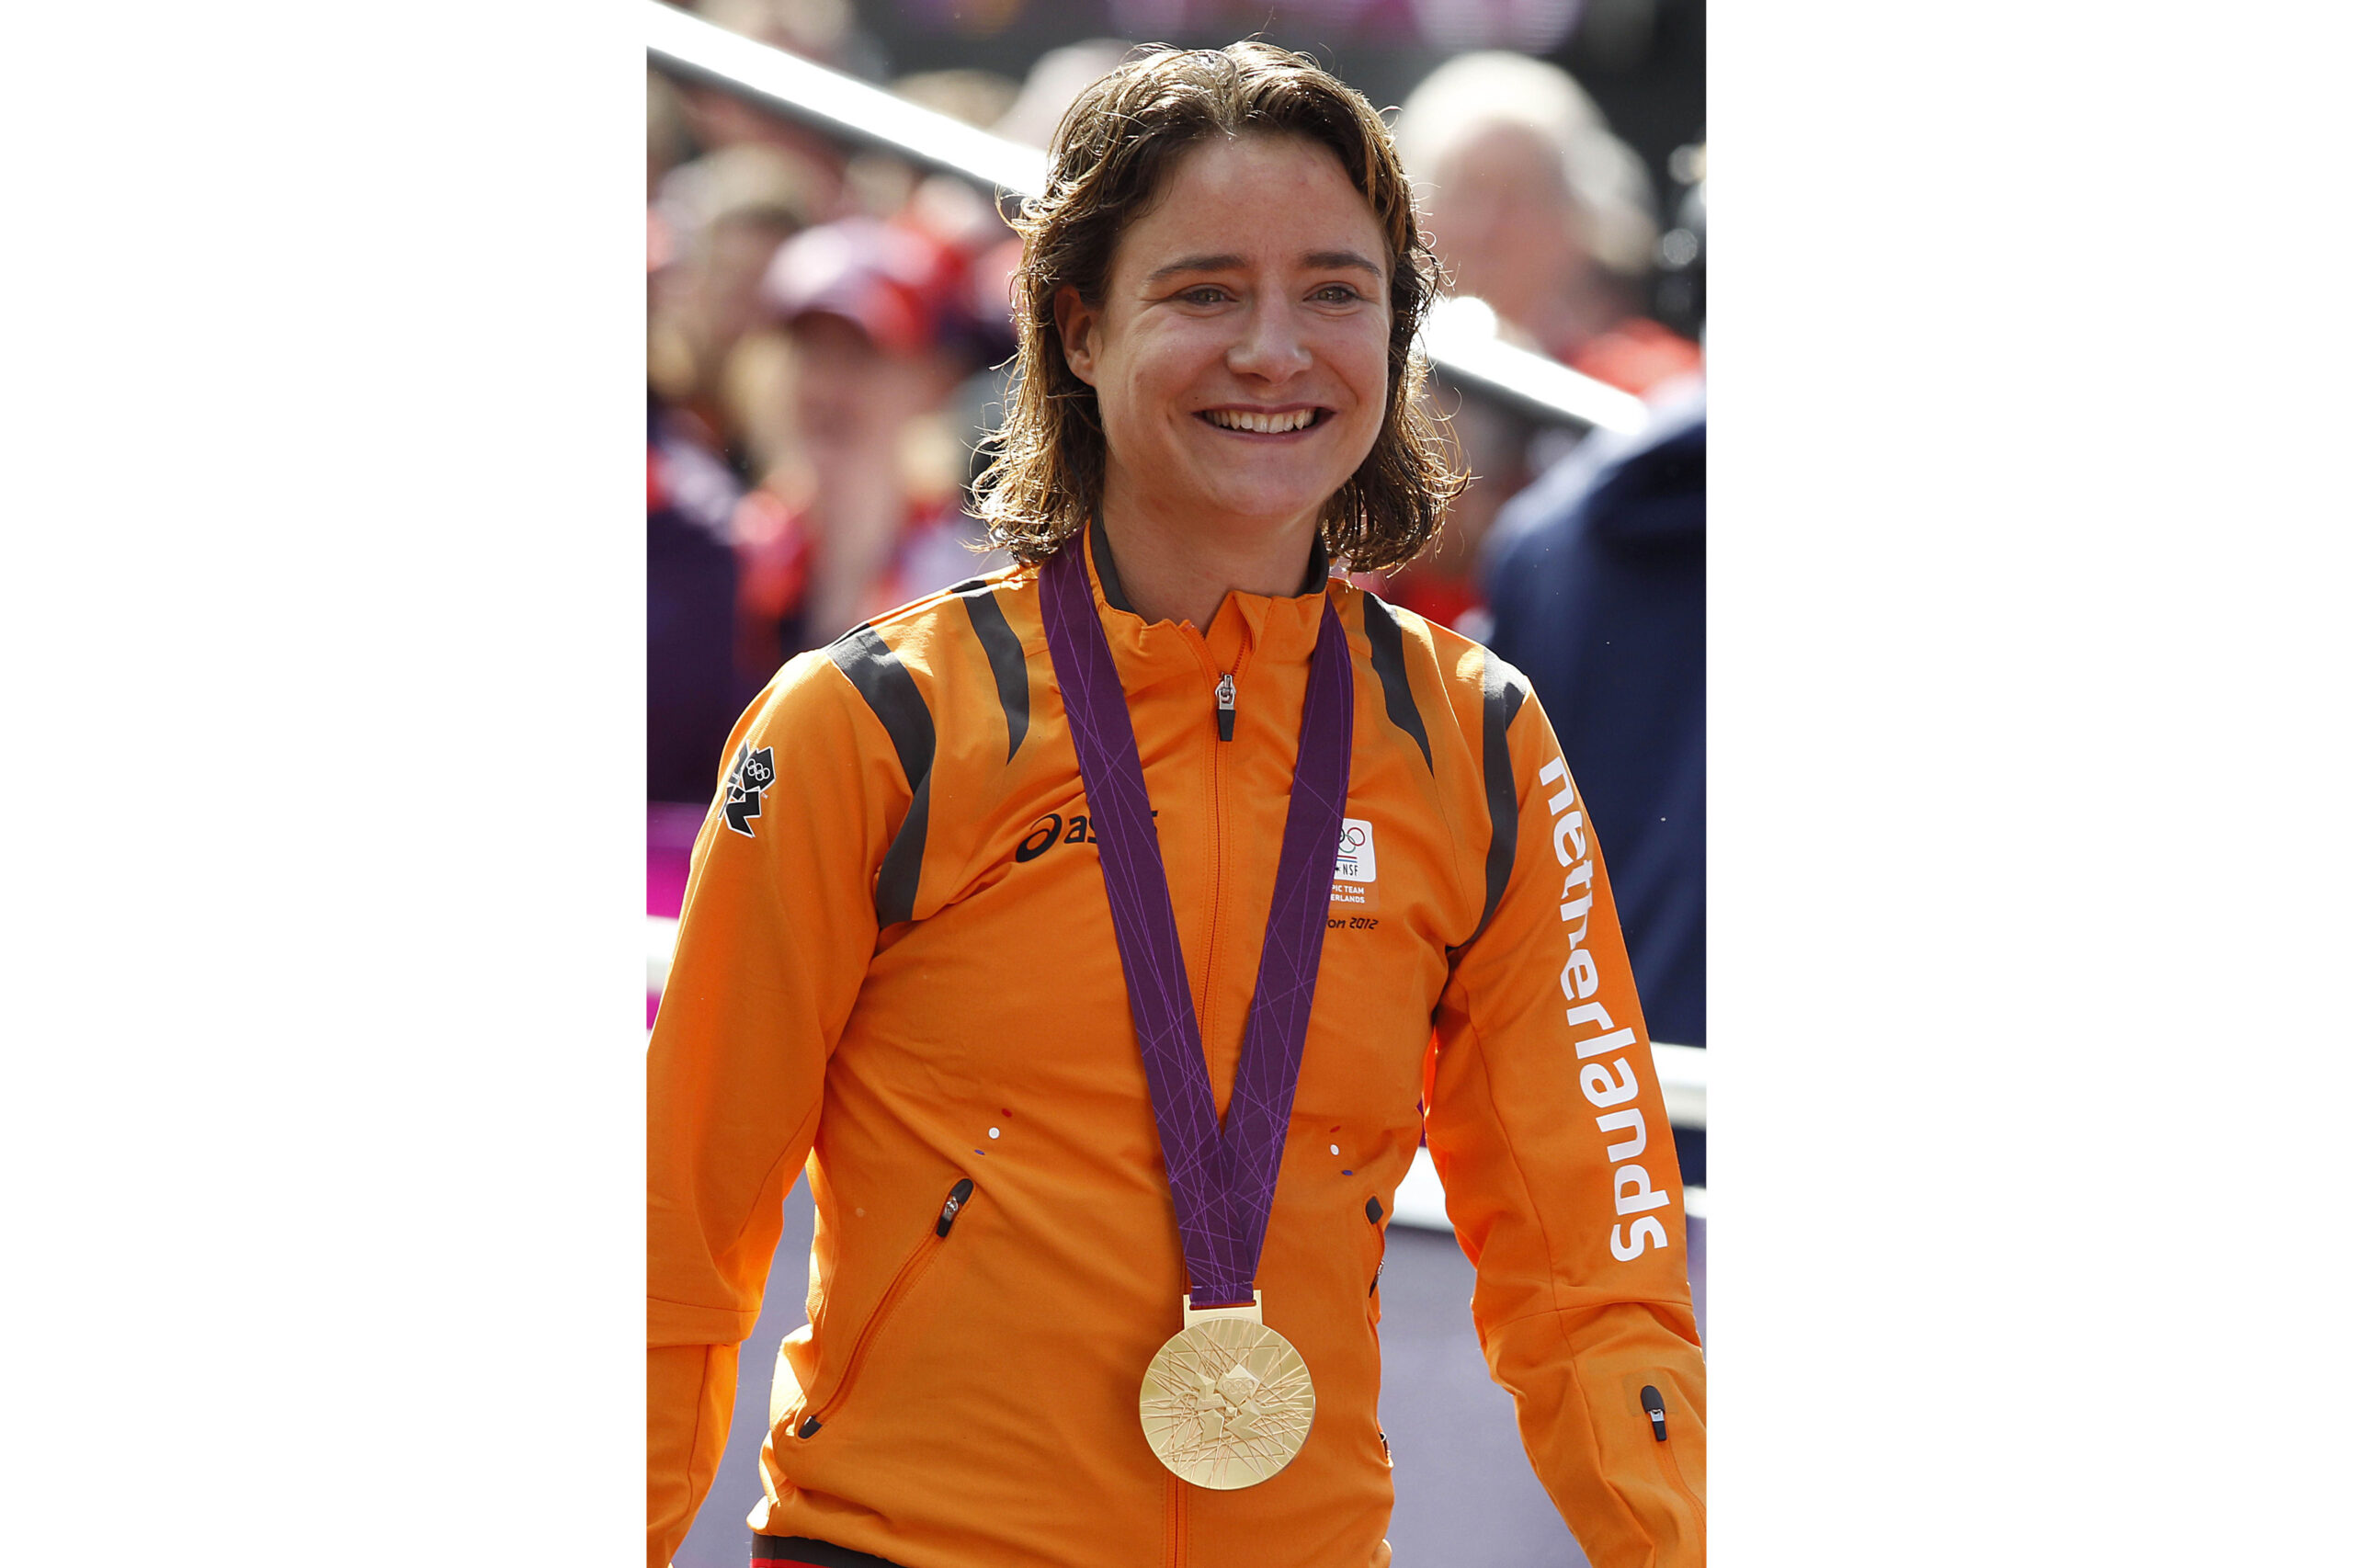 Marianne Vos Erfgoed en CHIEF gaan daten!